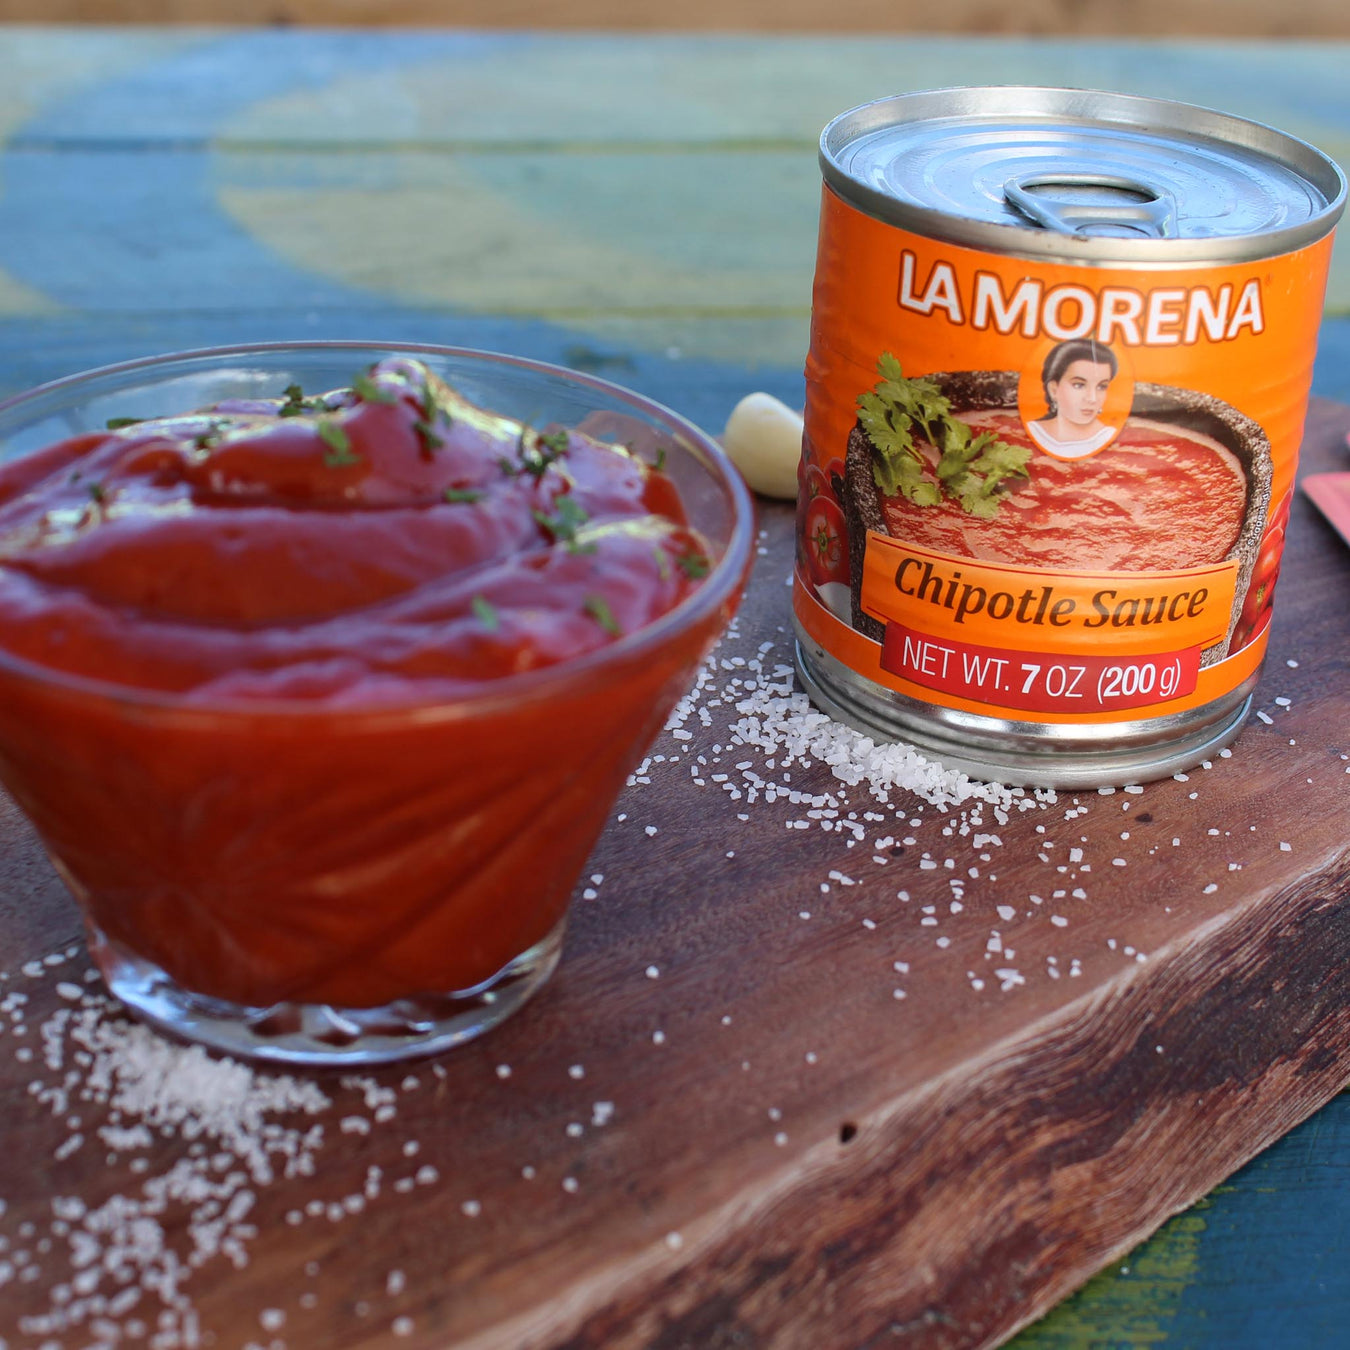 La Morena Sauces - Chipotle, Salsas and more